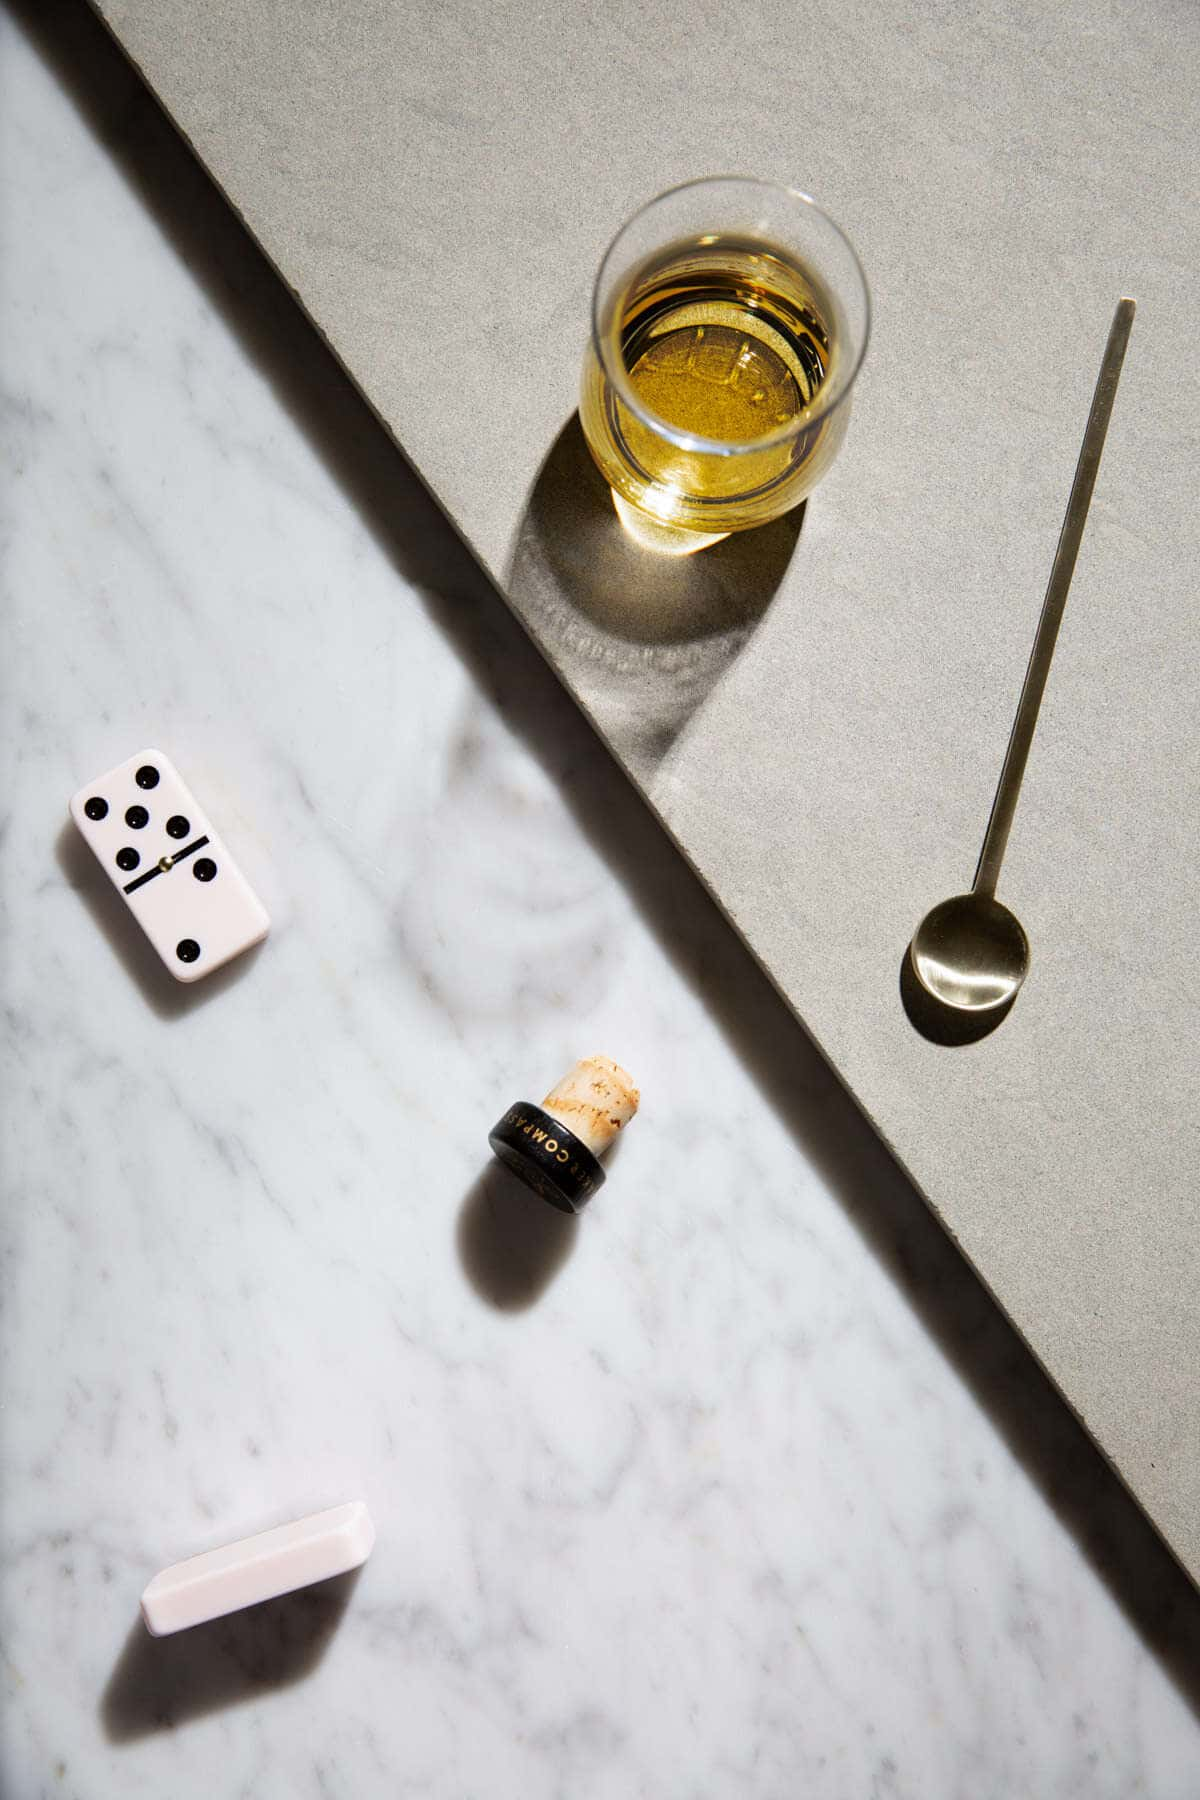 whiskey with dominos next to the glass on marble top